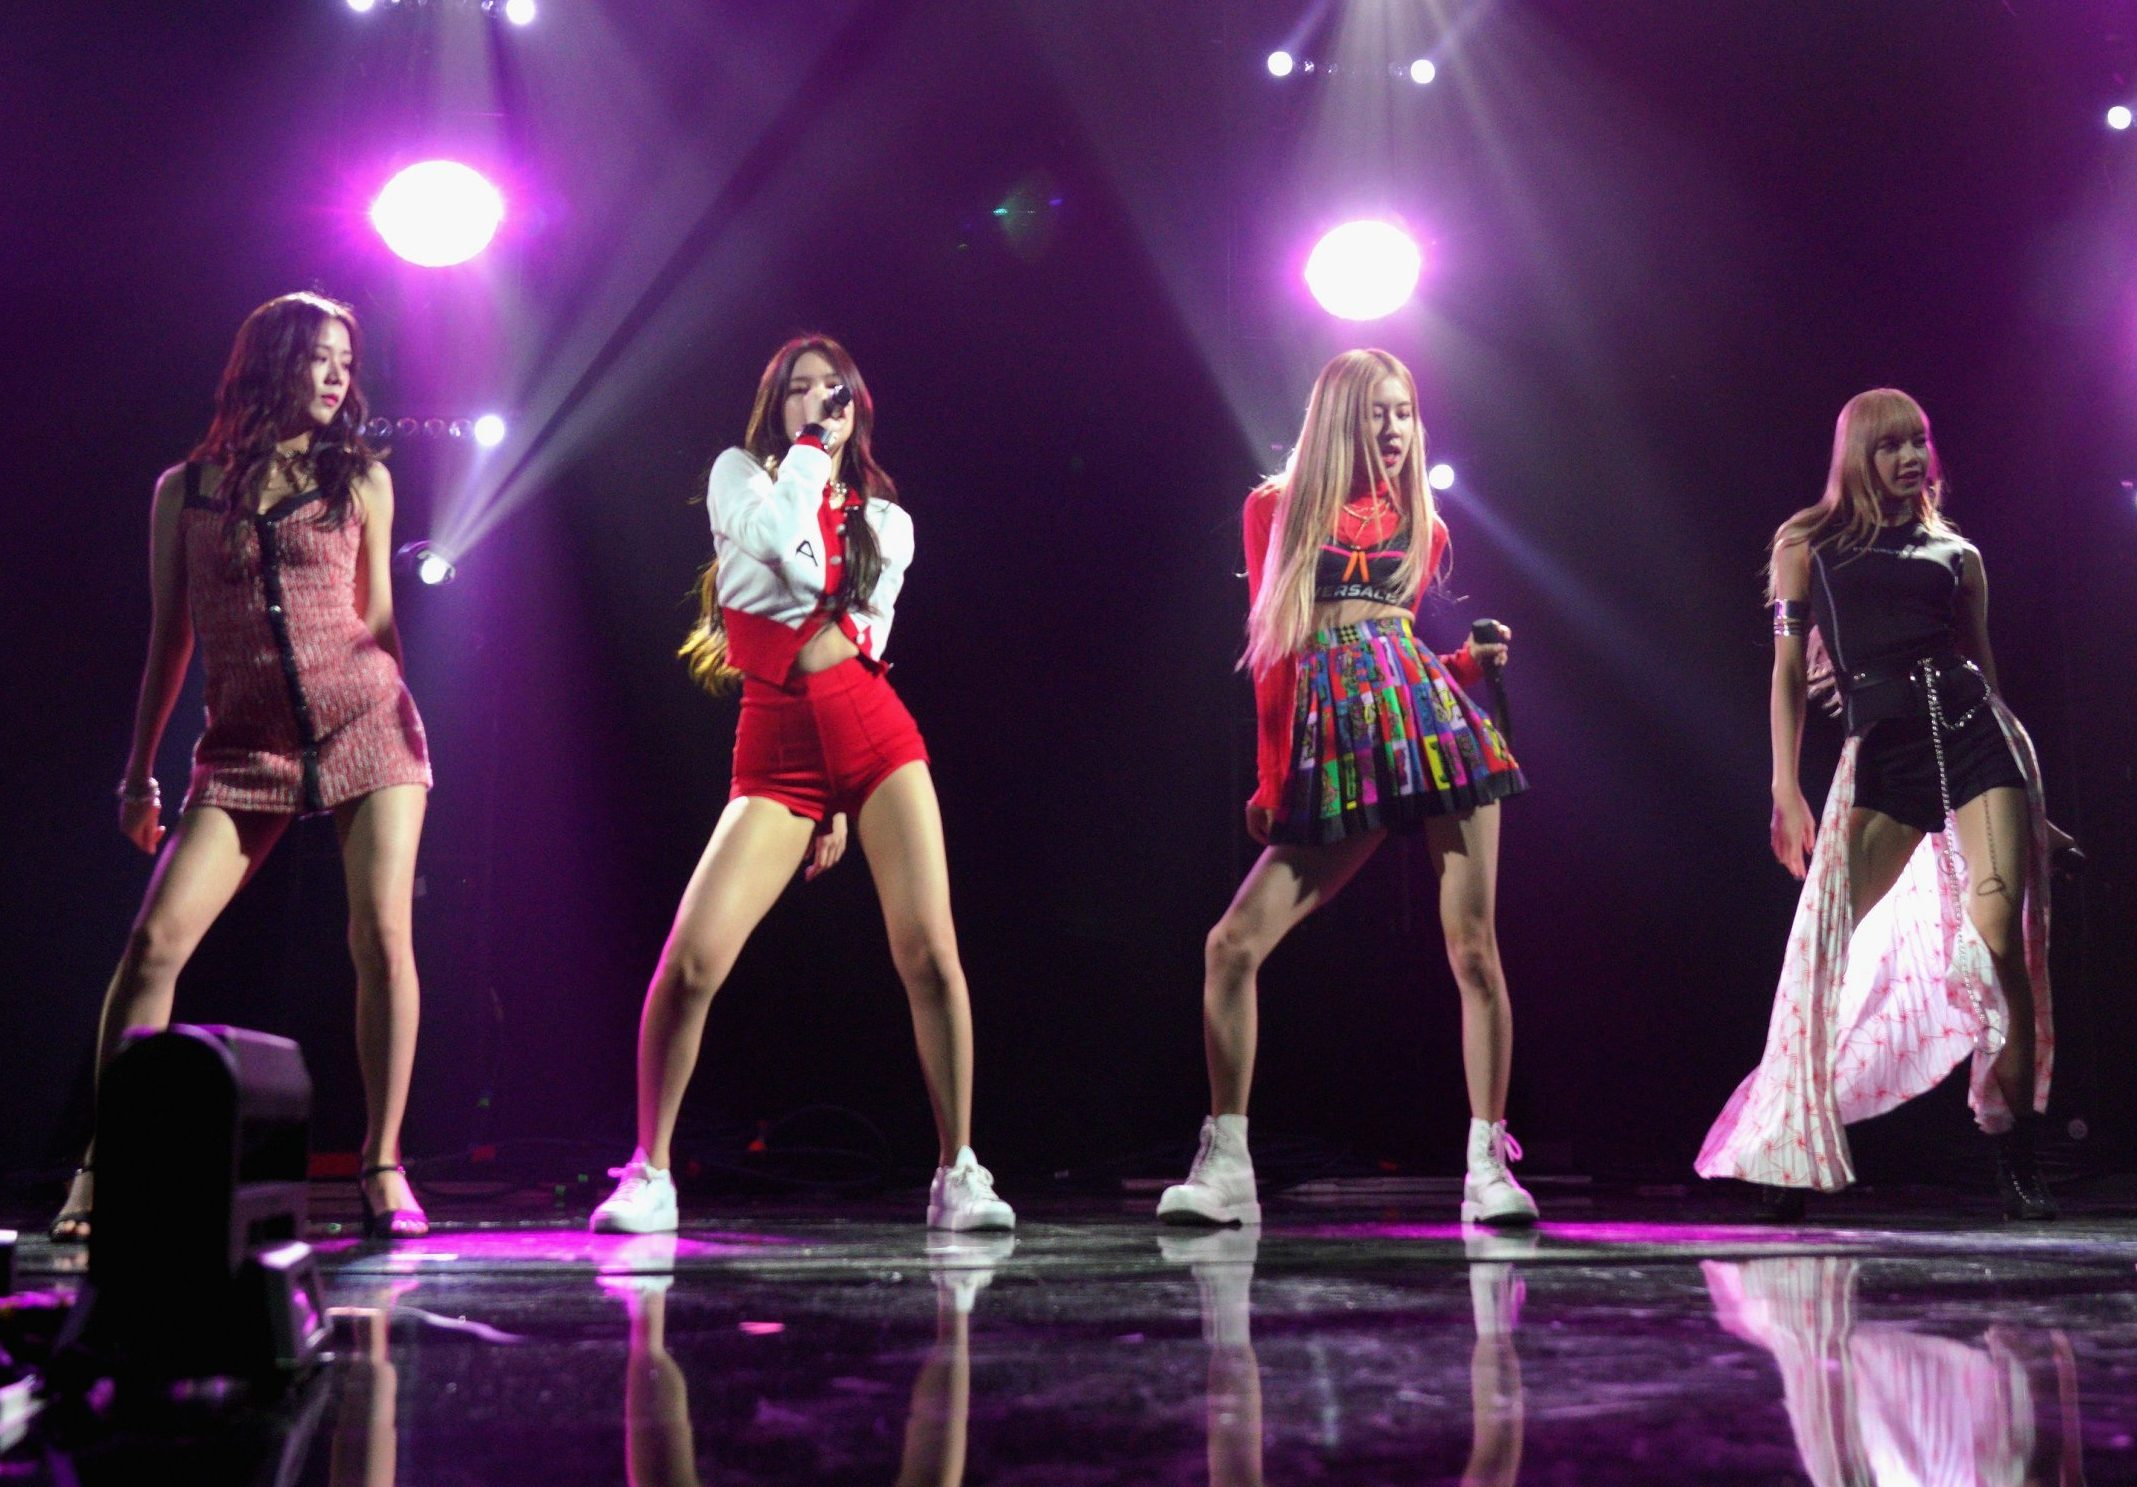 LOS ANGELES, CA - FEBRUARY 09: BlackPink performs during Sir Lucian Grainge's 2019 Artist Showcase Presented by Citi at The Row on February 9, 2019 in Los Angeles, California. (Photo by JC Olivera/Getty Images for Universal Music Group)